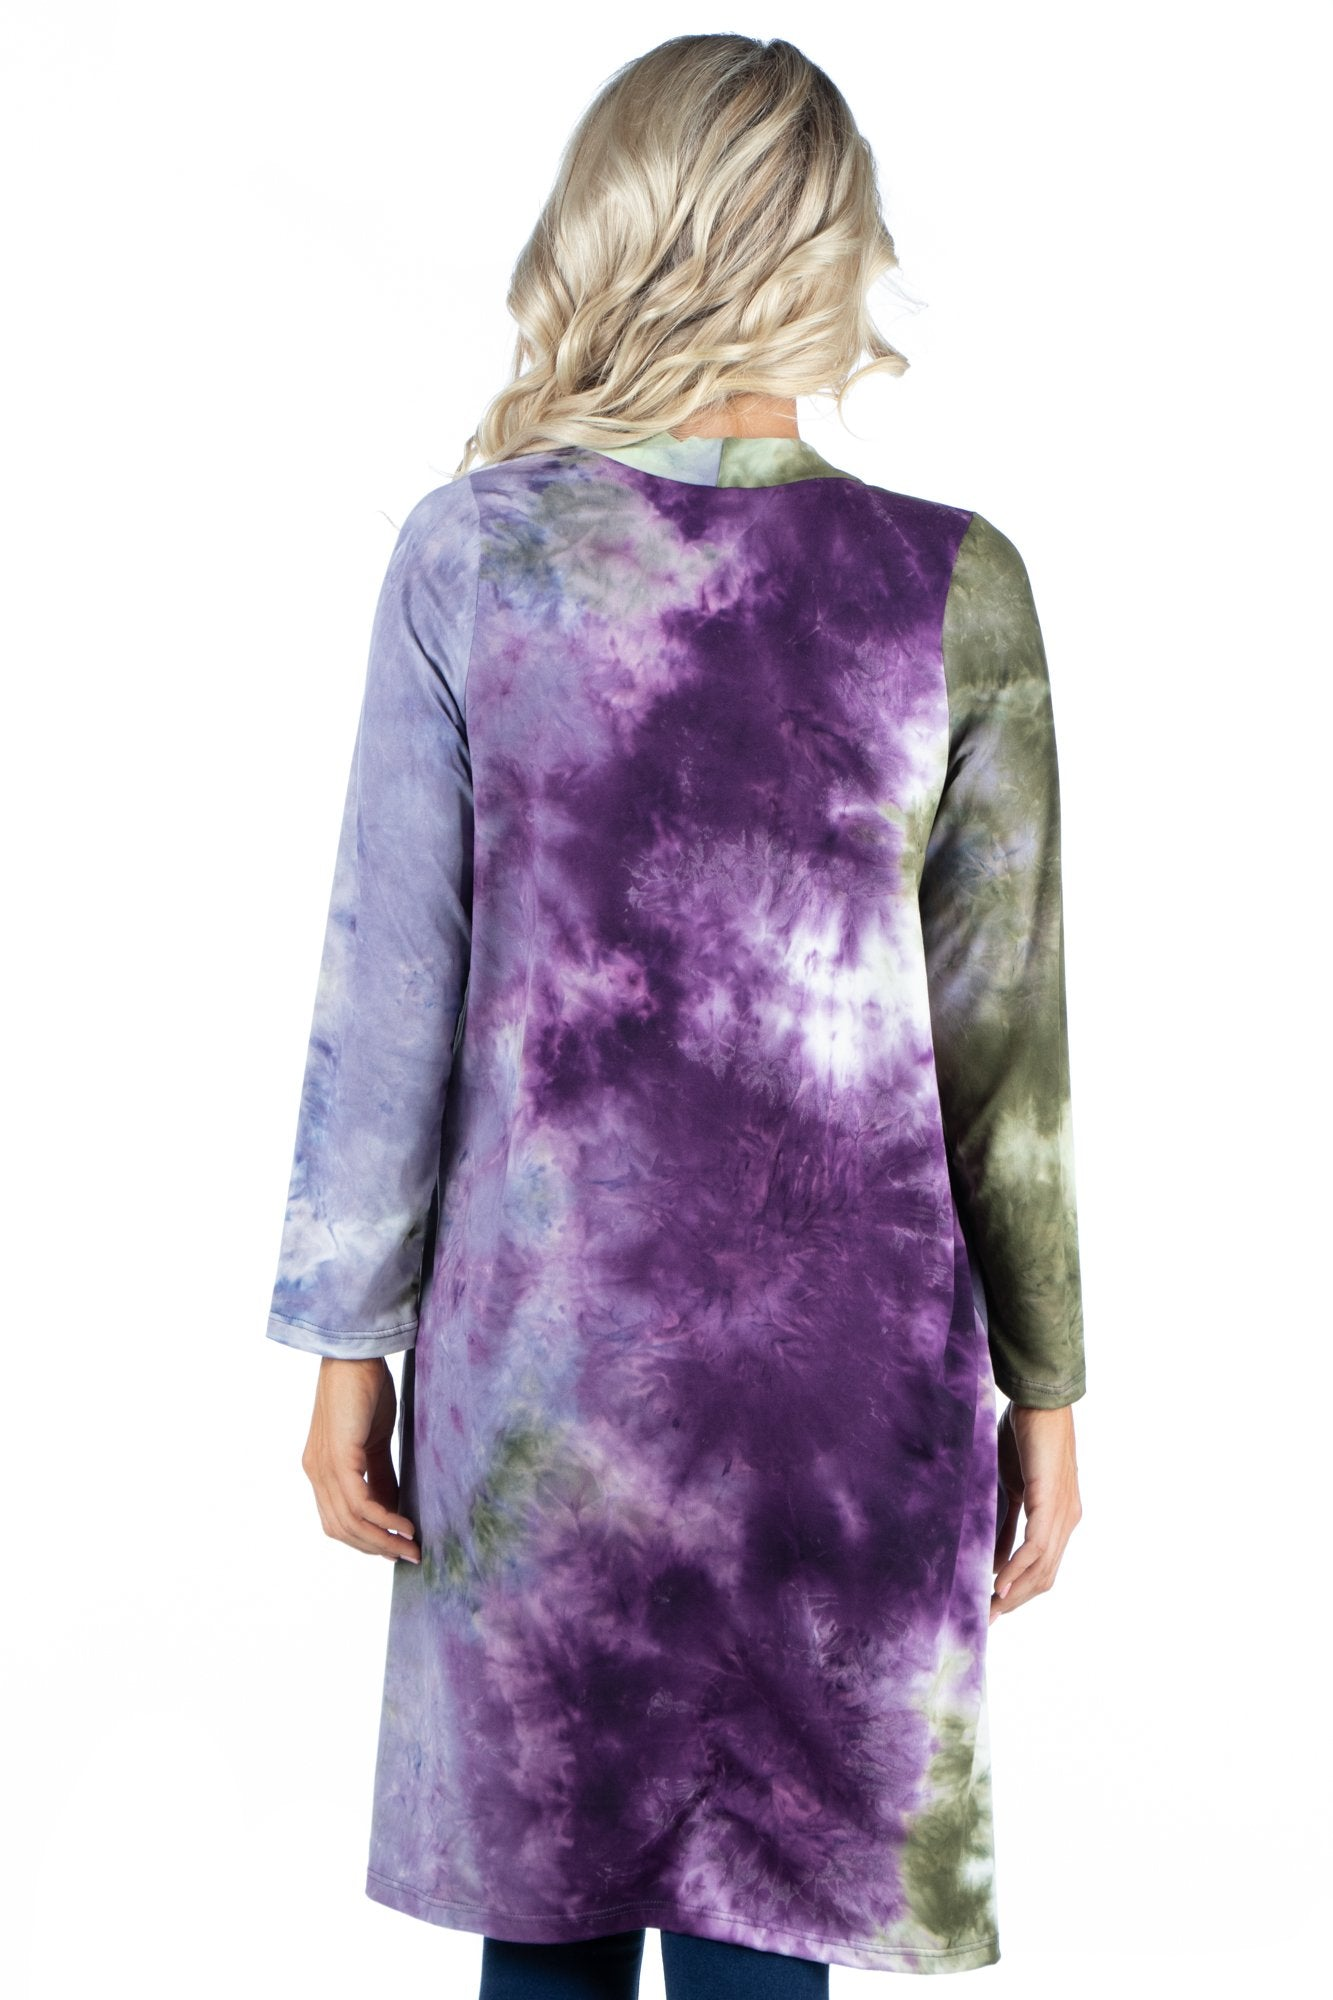 24seven Comfort Apparel Open Front Knee Length Tie Dye Cardigan